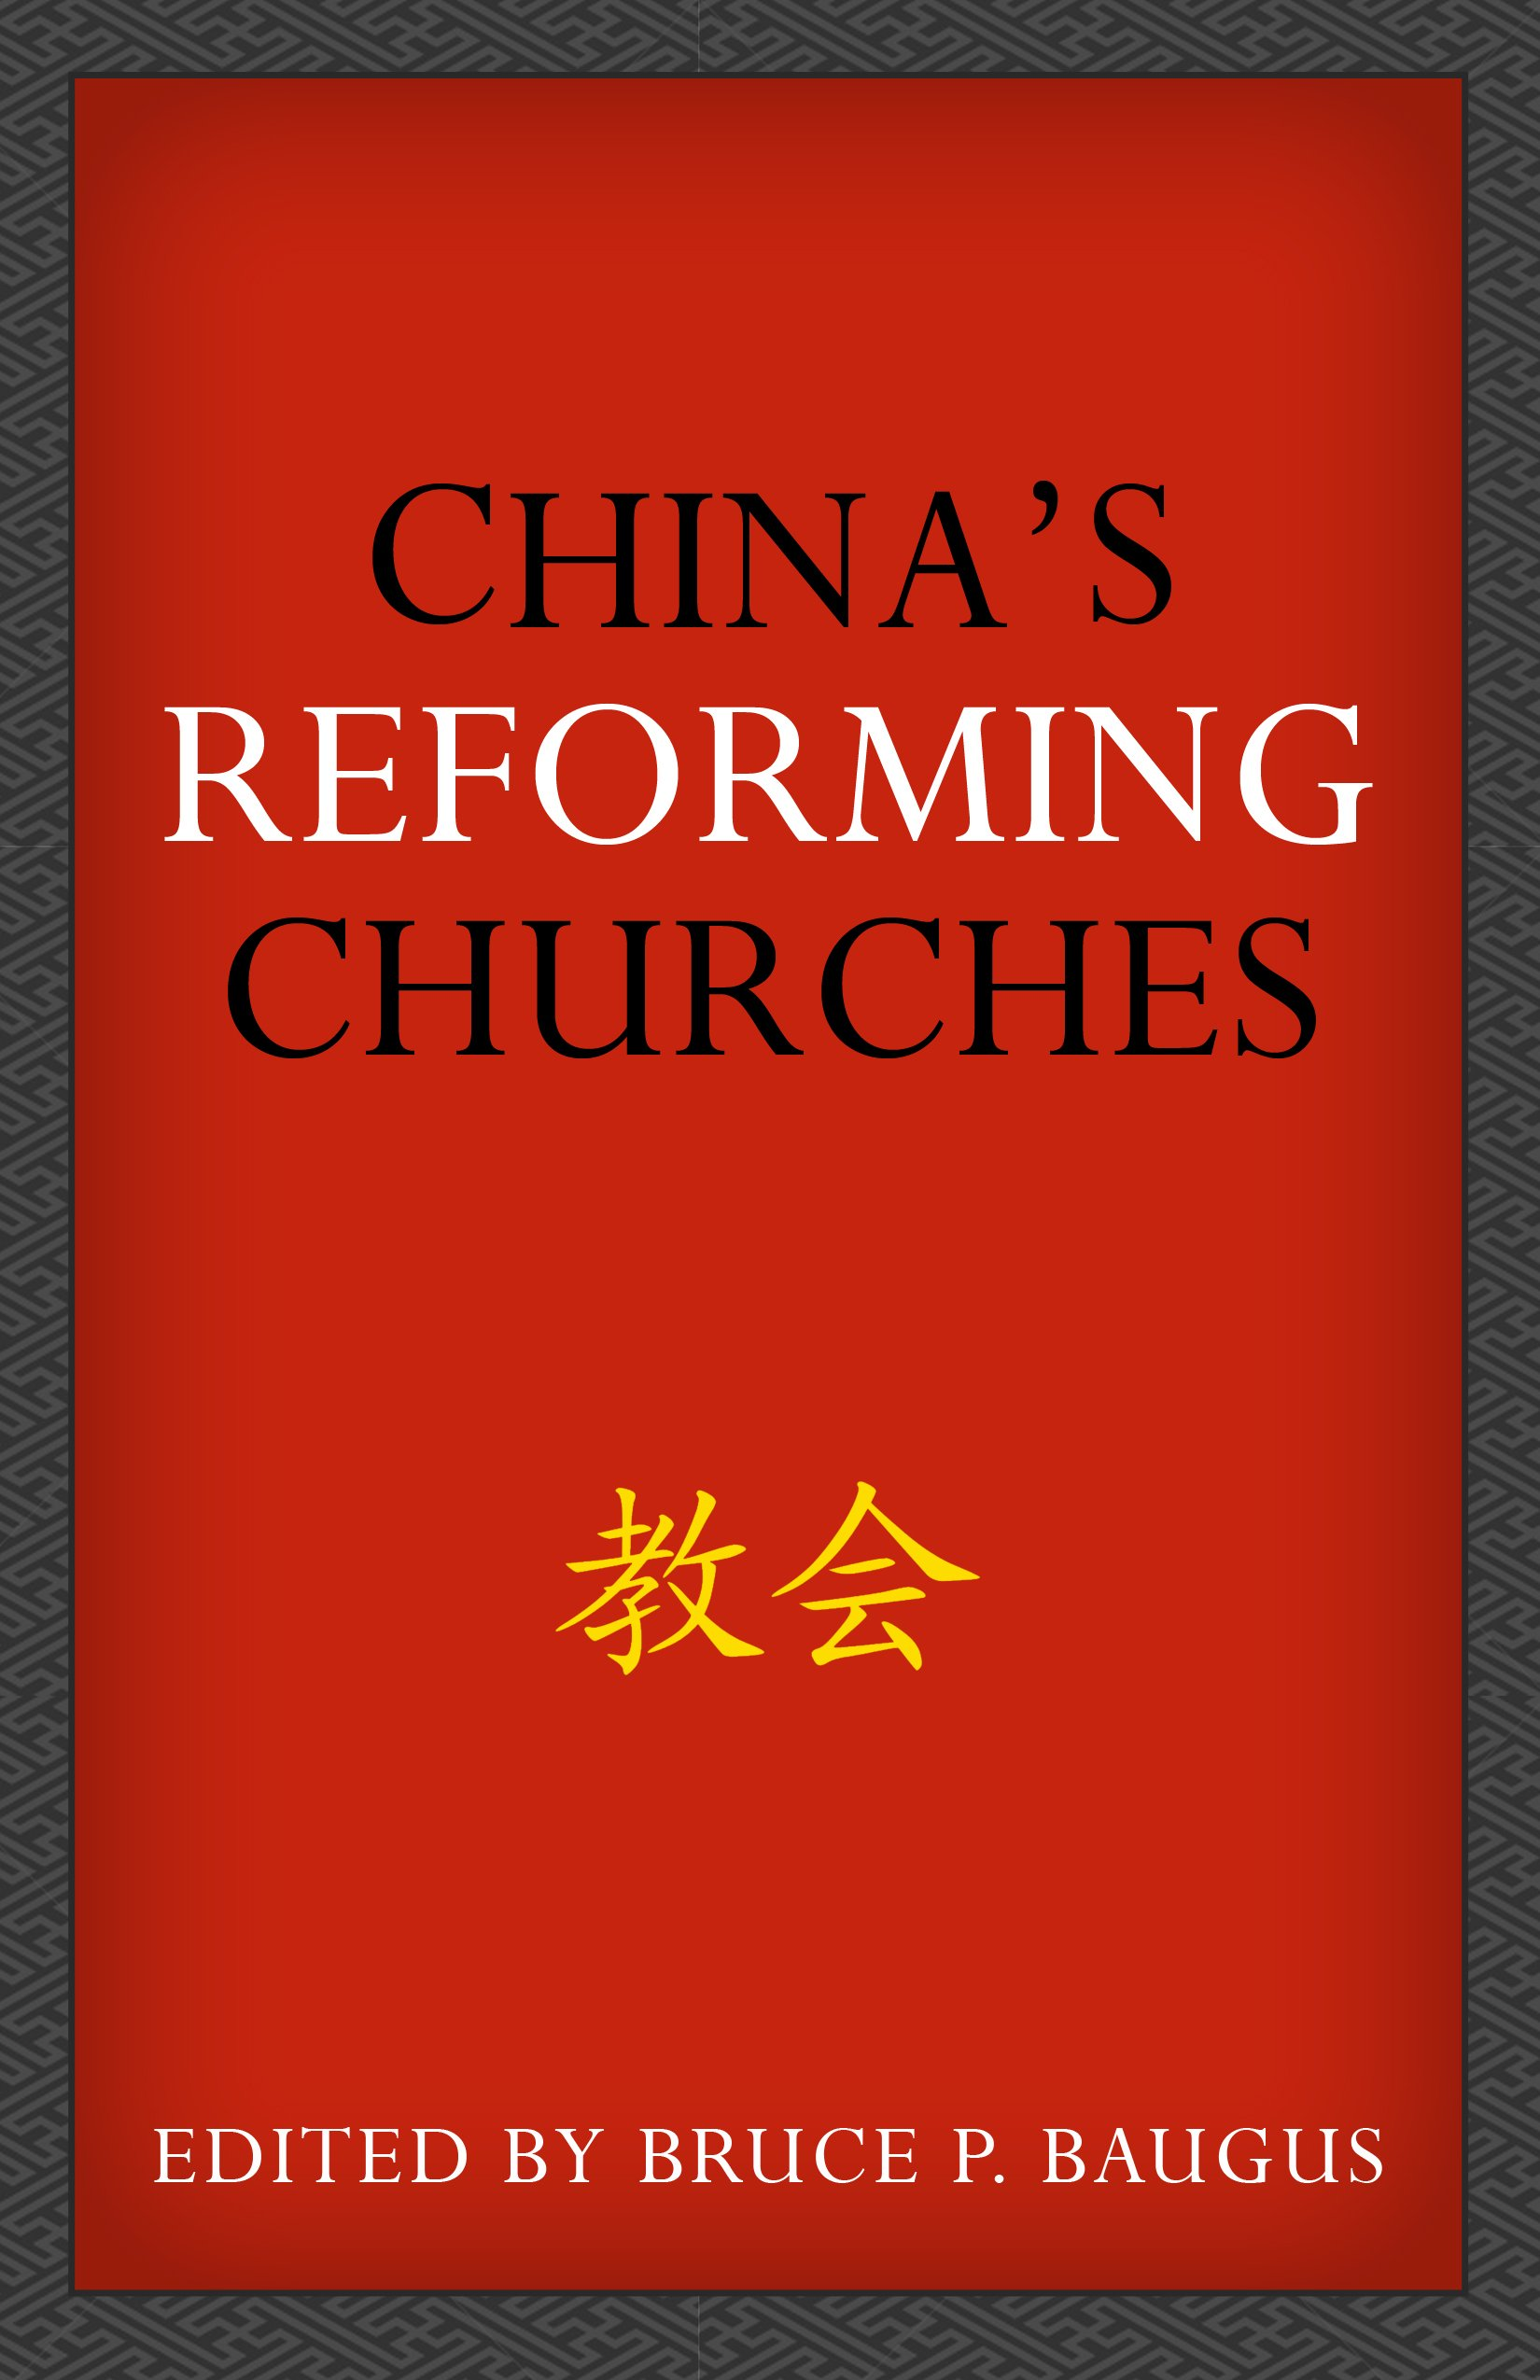 china-s-reforming-churches